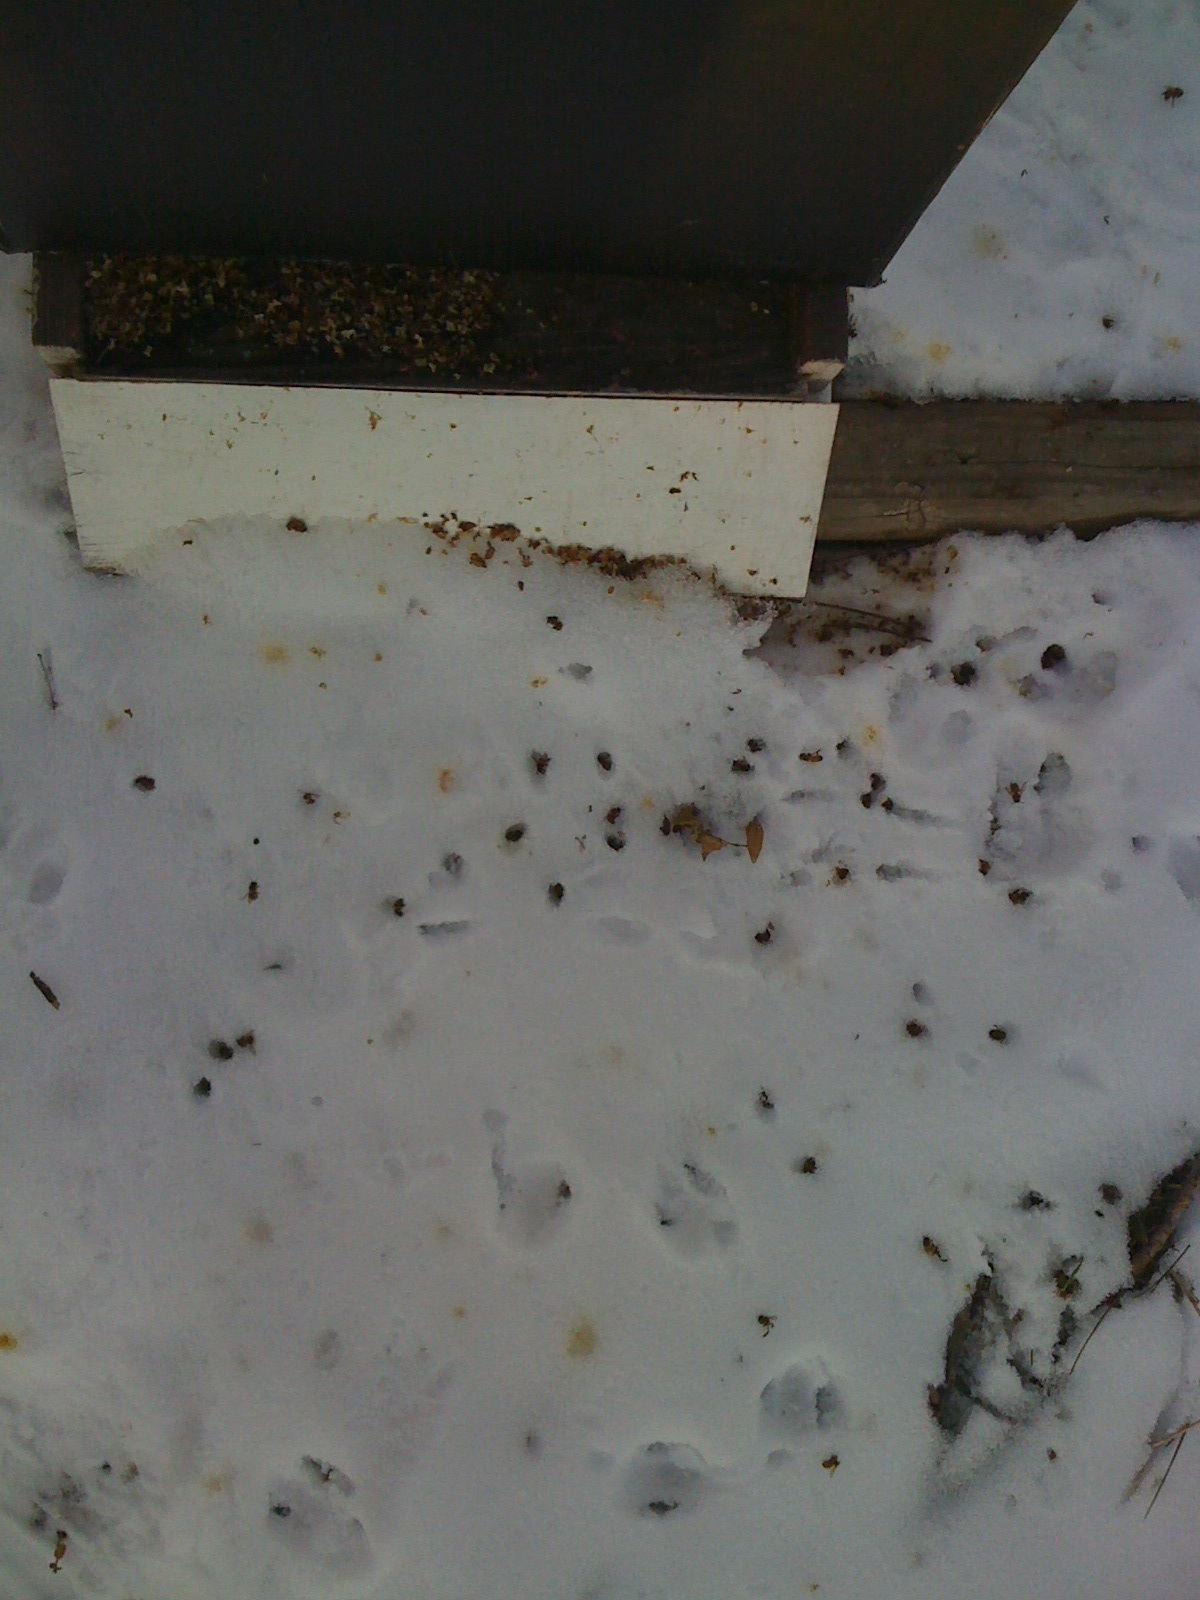 Dead bees in snow